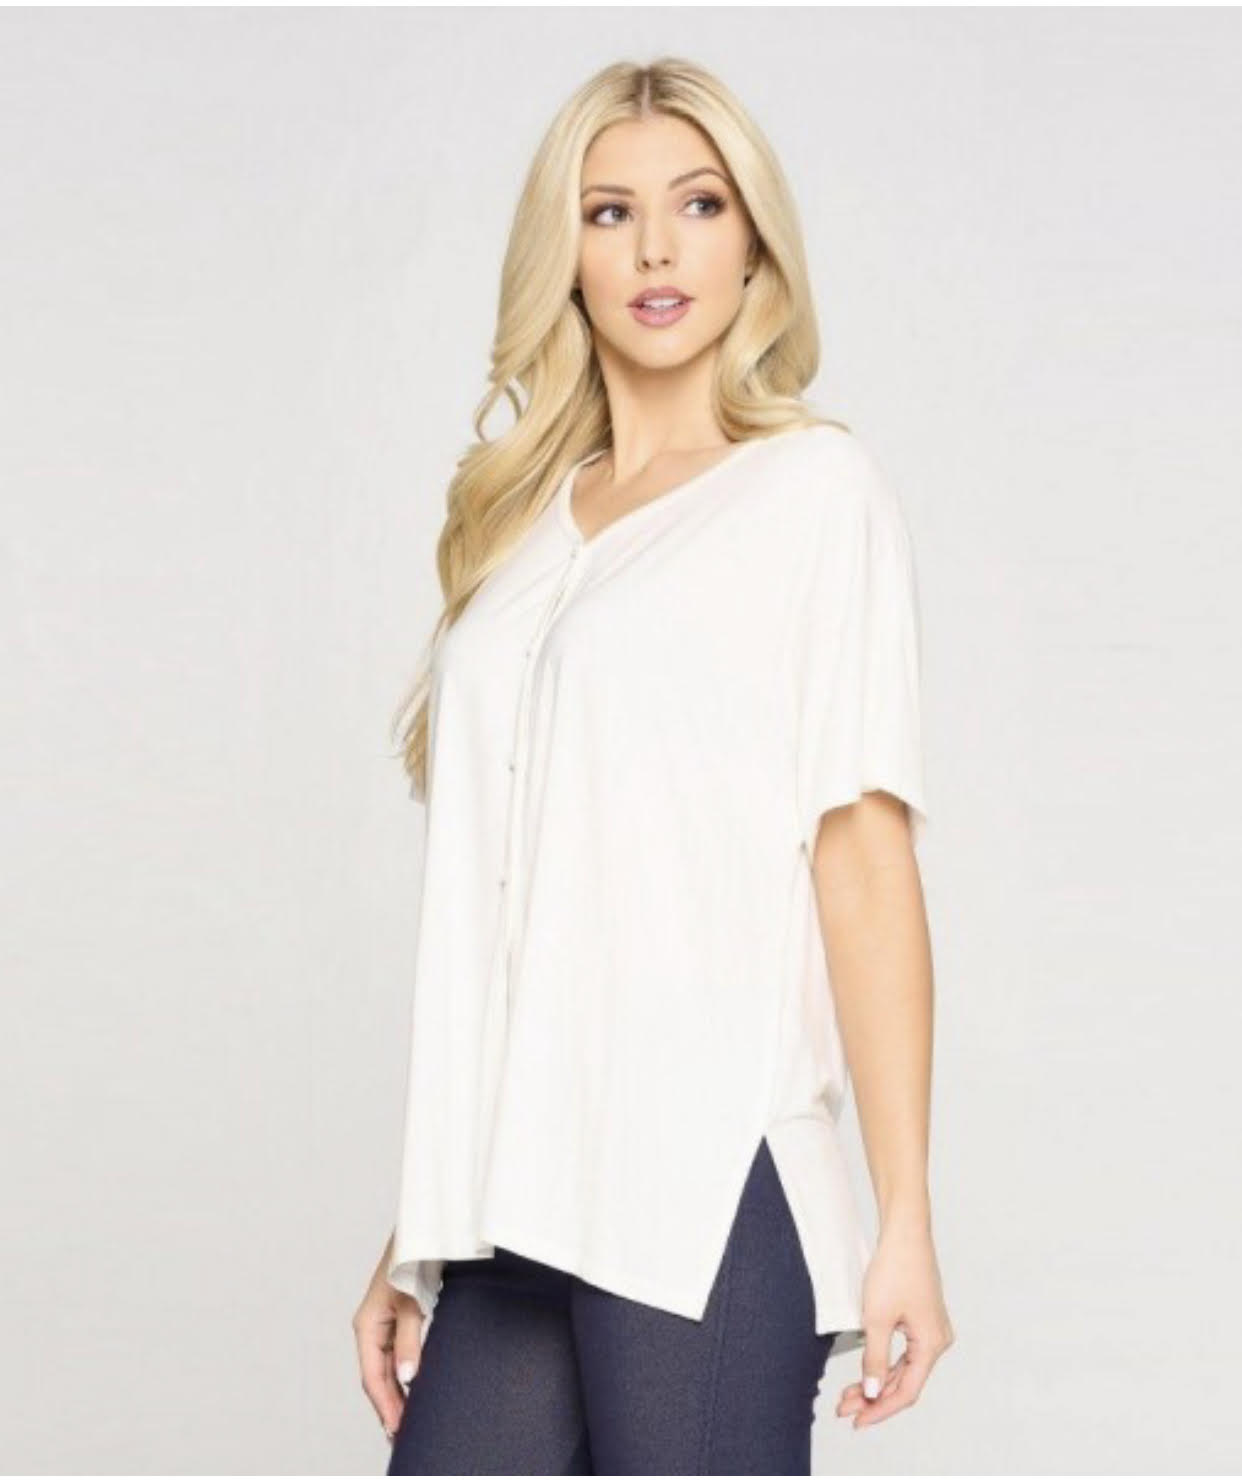 Casual Top Features a V-Neck, Four Front Button-Up Closure, Dolman Style Sleeves, and a Front Slit